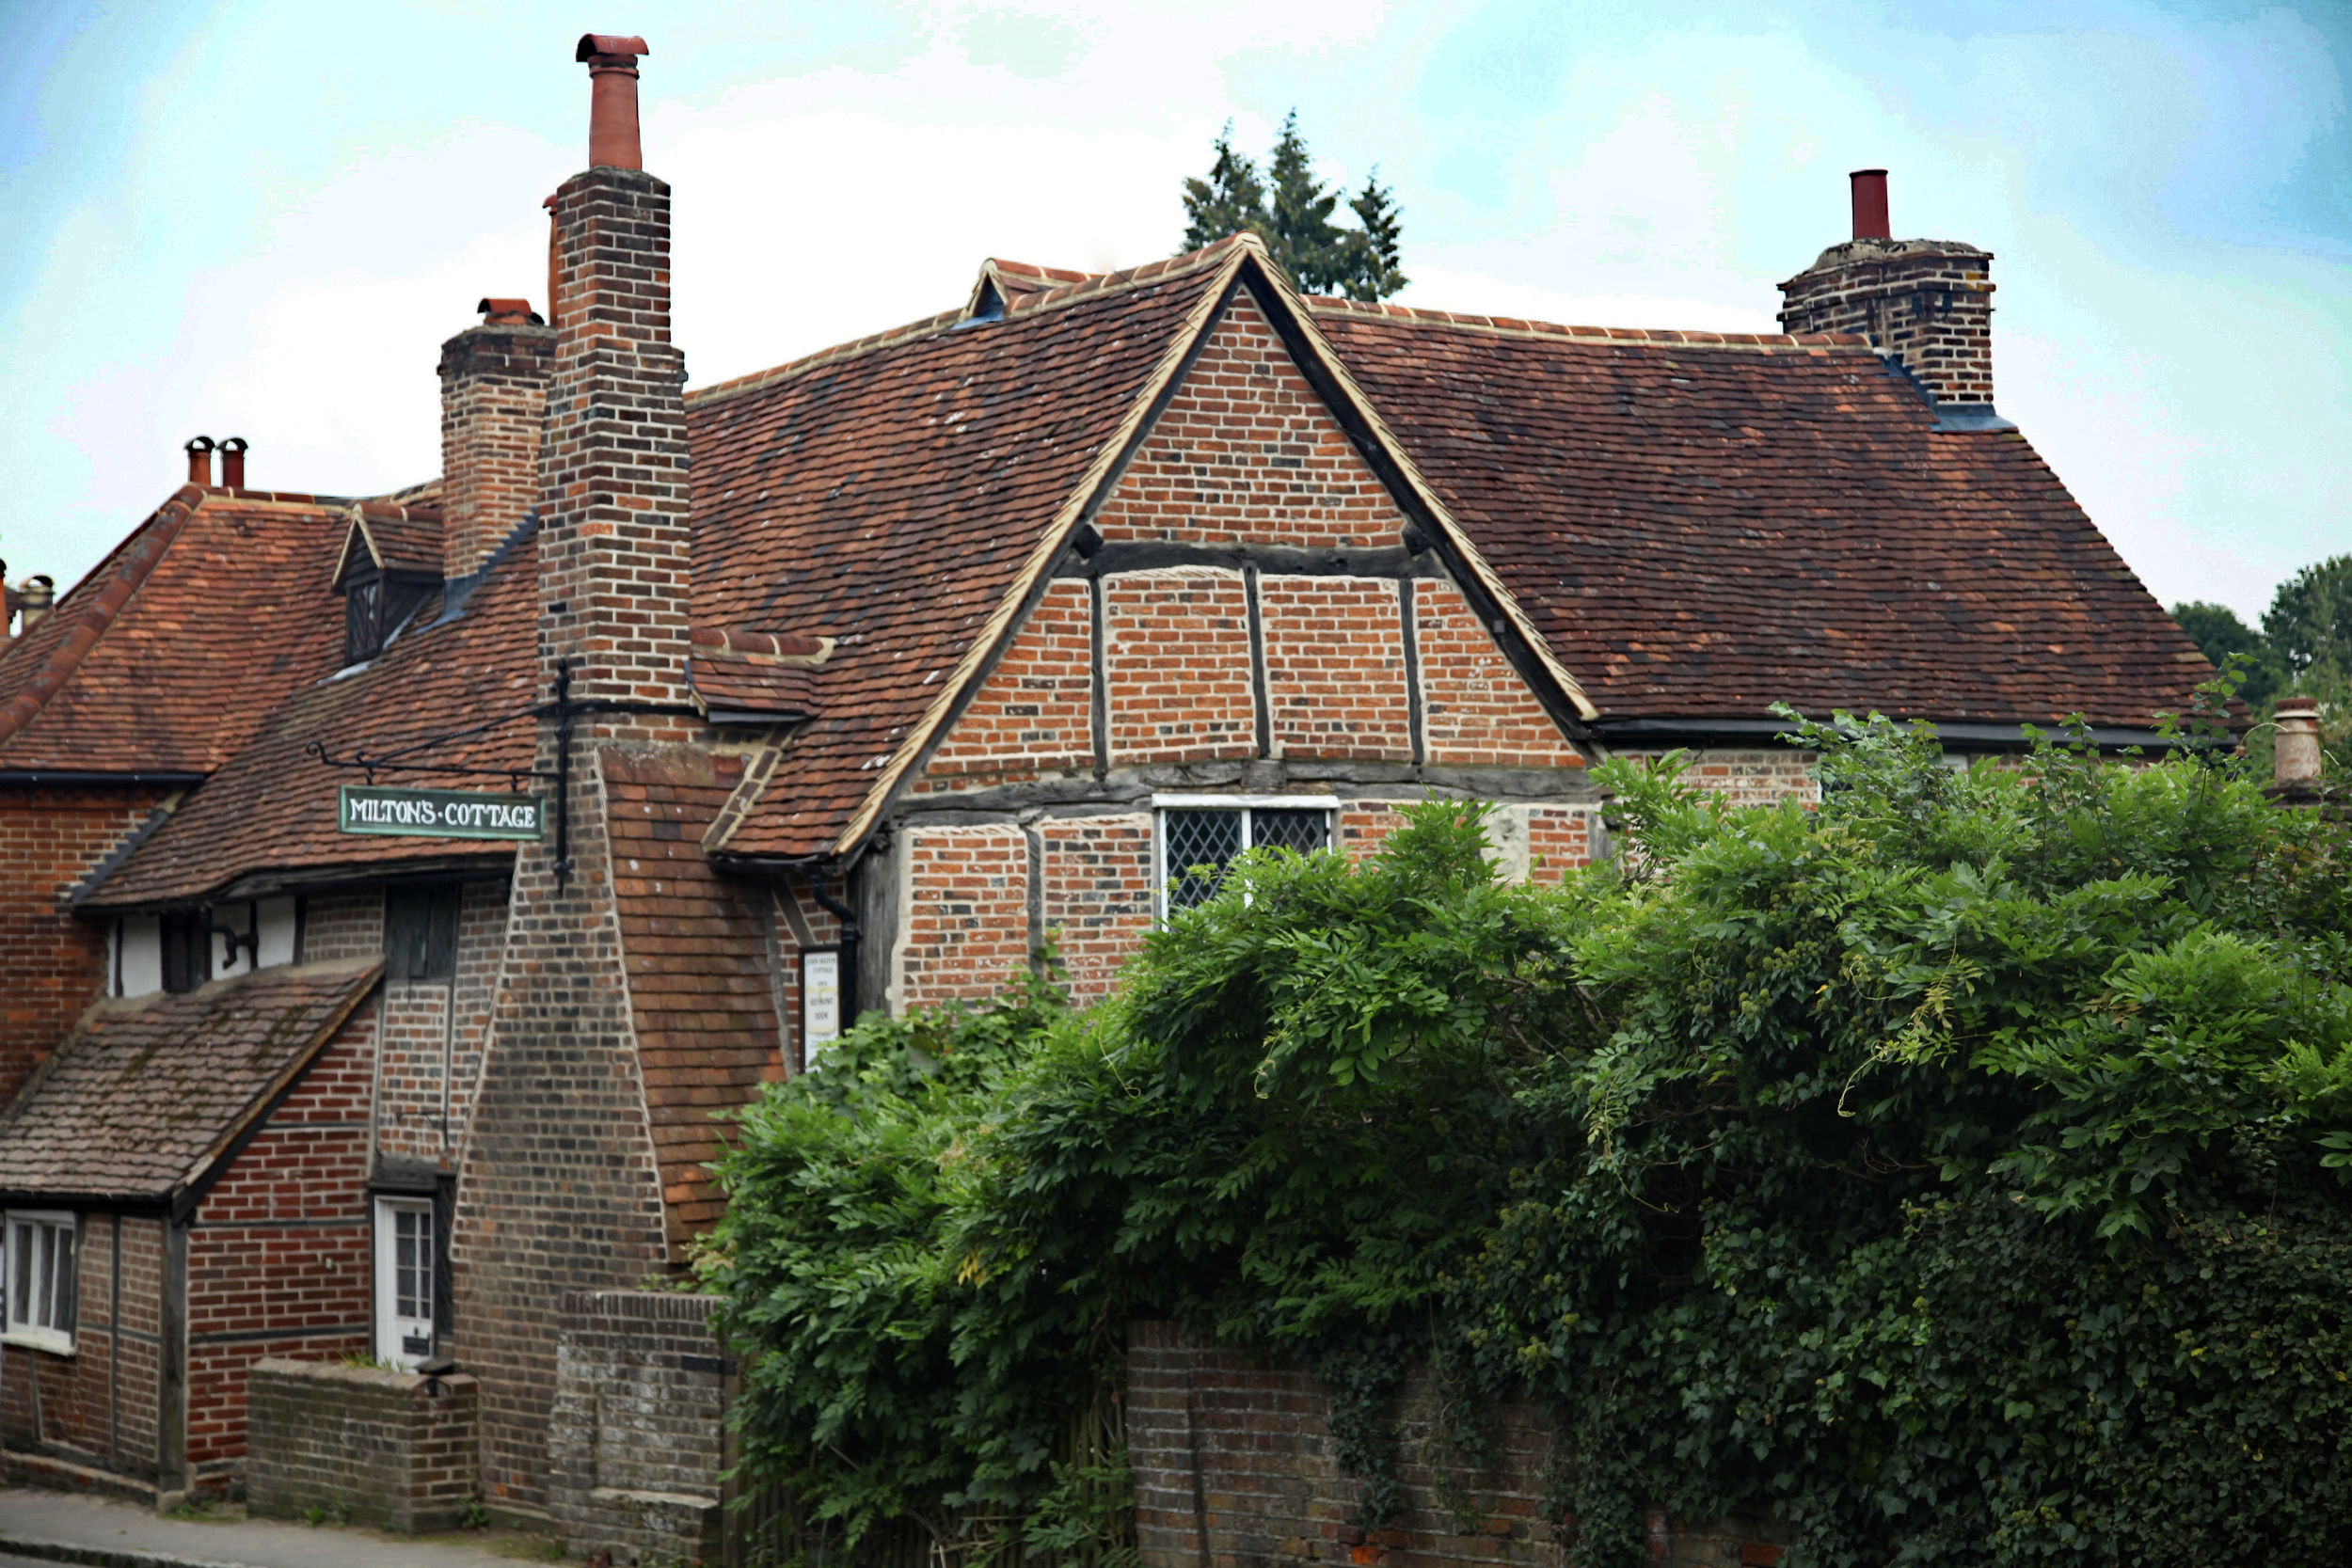 Milton's cottage, and now museum, at Chalfont St Giles, Buckinghamshire